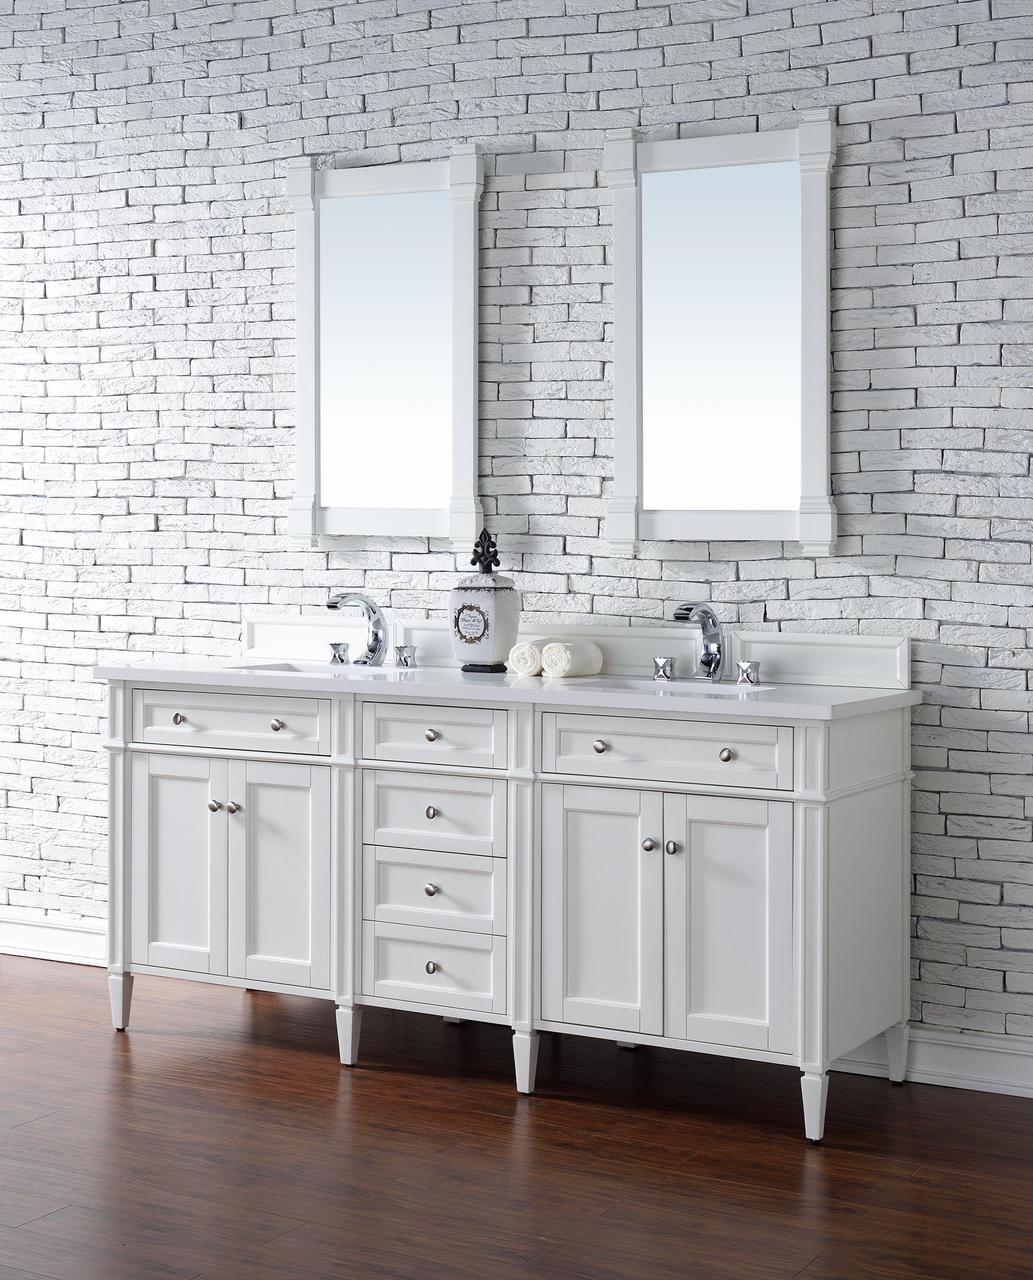 Wonderful Bathroom Shower Ideas Small Small Vinyl Wall Art Bathroom Quotes Round Good Paint For Bathroom Ceiling Shabby Chic Bath Shelves Youthful Install A Bath Spout DarkBathroom Stall Doors Hardware Contemporary 72 Inch Double Sink Bathroom Vanity Cottage White ..